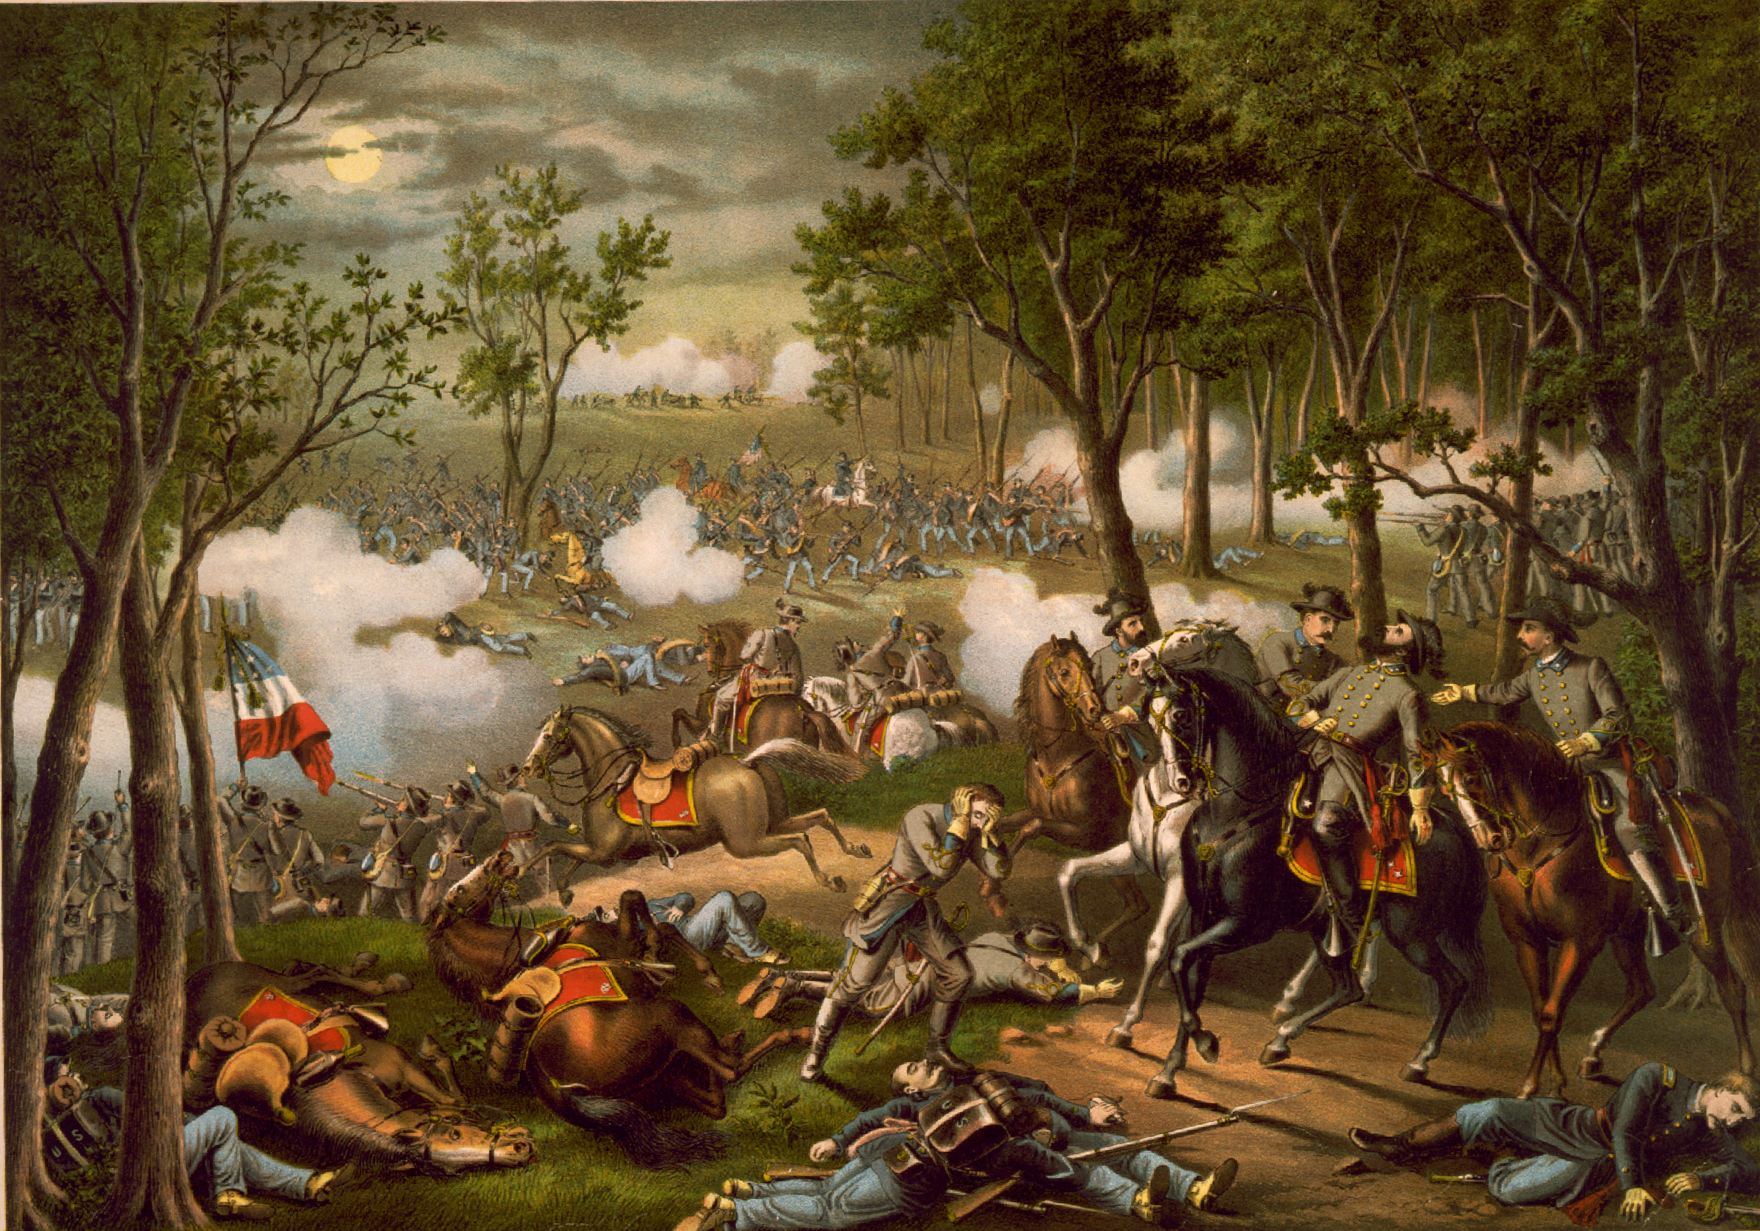 File:Battle of Chancellorsville.png - Wikipedia, the free encyclopedia